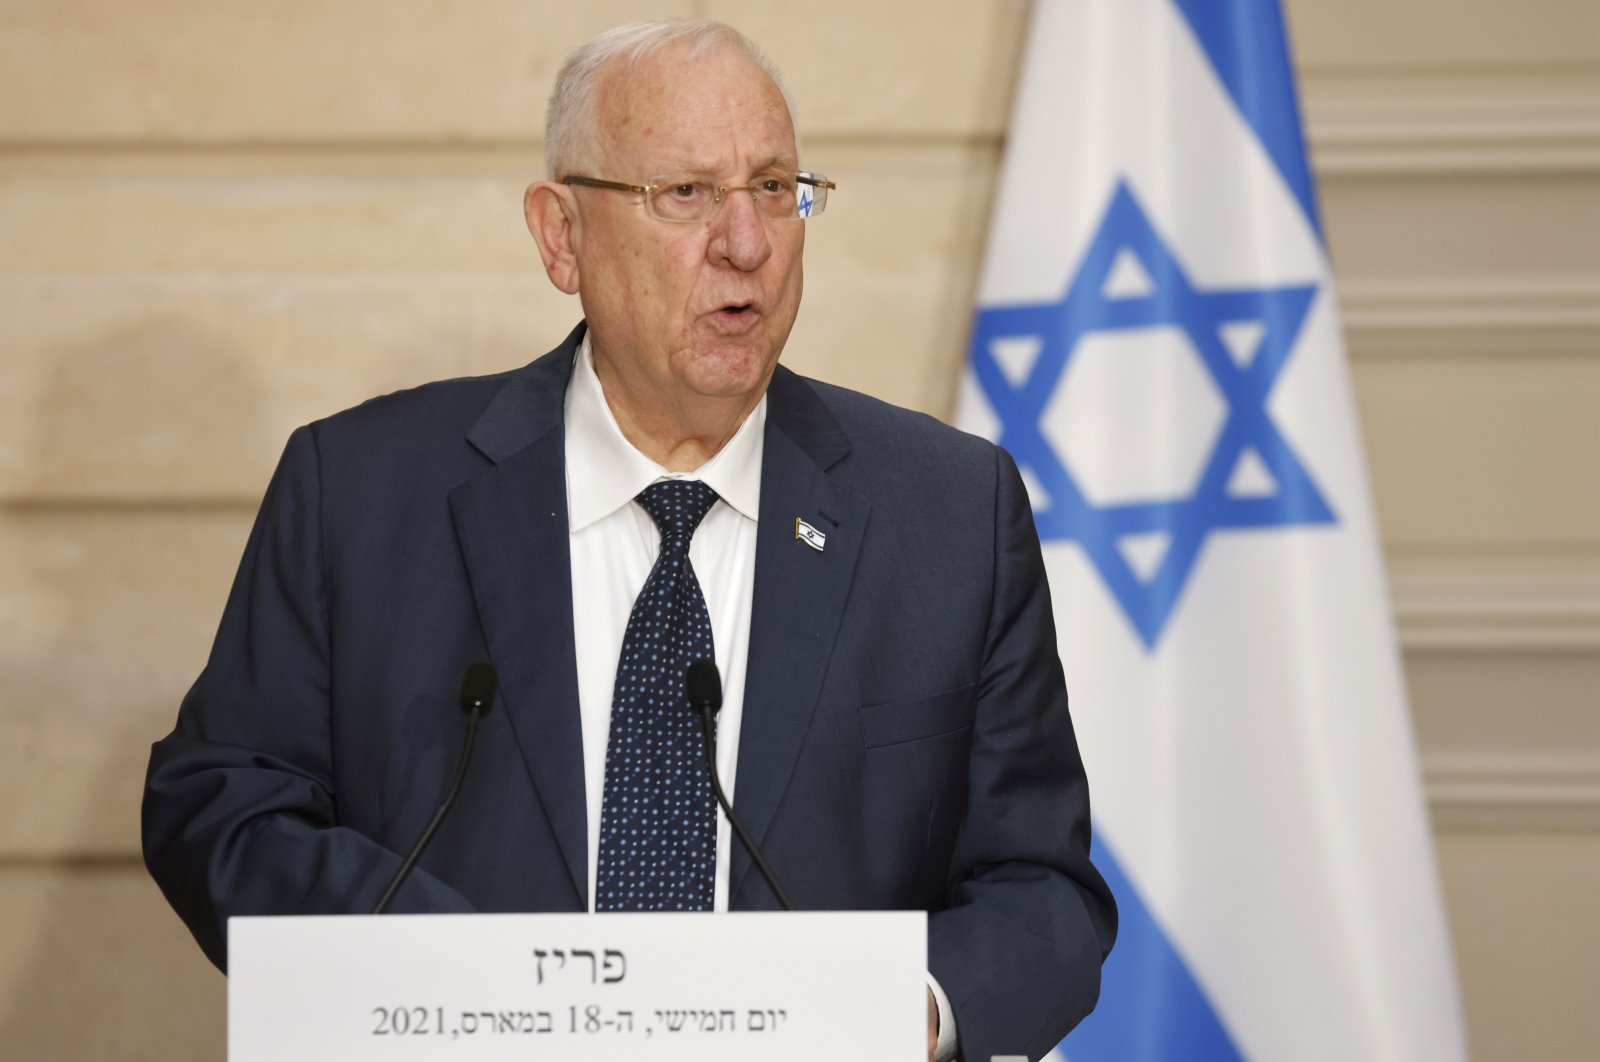 Israel's President Reuven Rivlin speaks during a joint news conference with French President Emmanuel Macron, after a working lunch, at the Elysee Palace in Paris, France, March 18, 2021. (Reuters Photo)